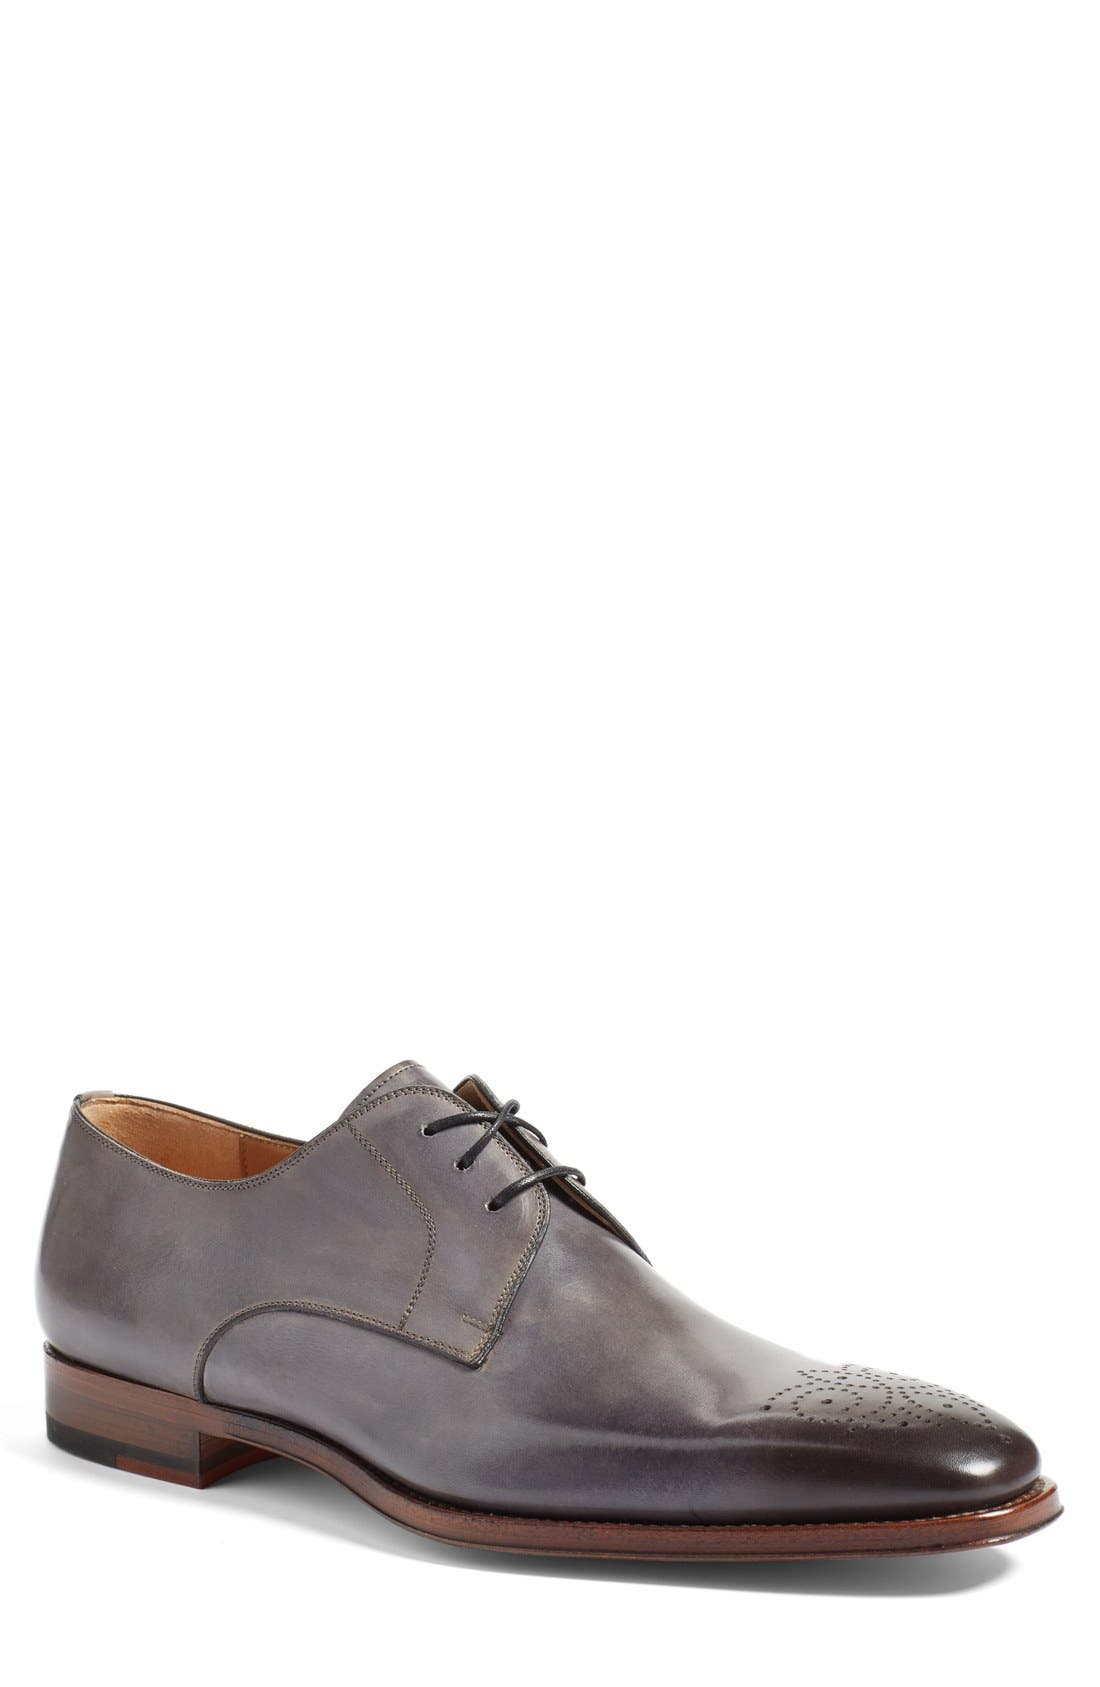 Magnanni Gerardo Medallion Toe Derby (Men)